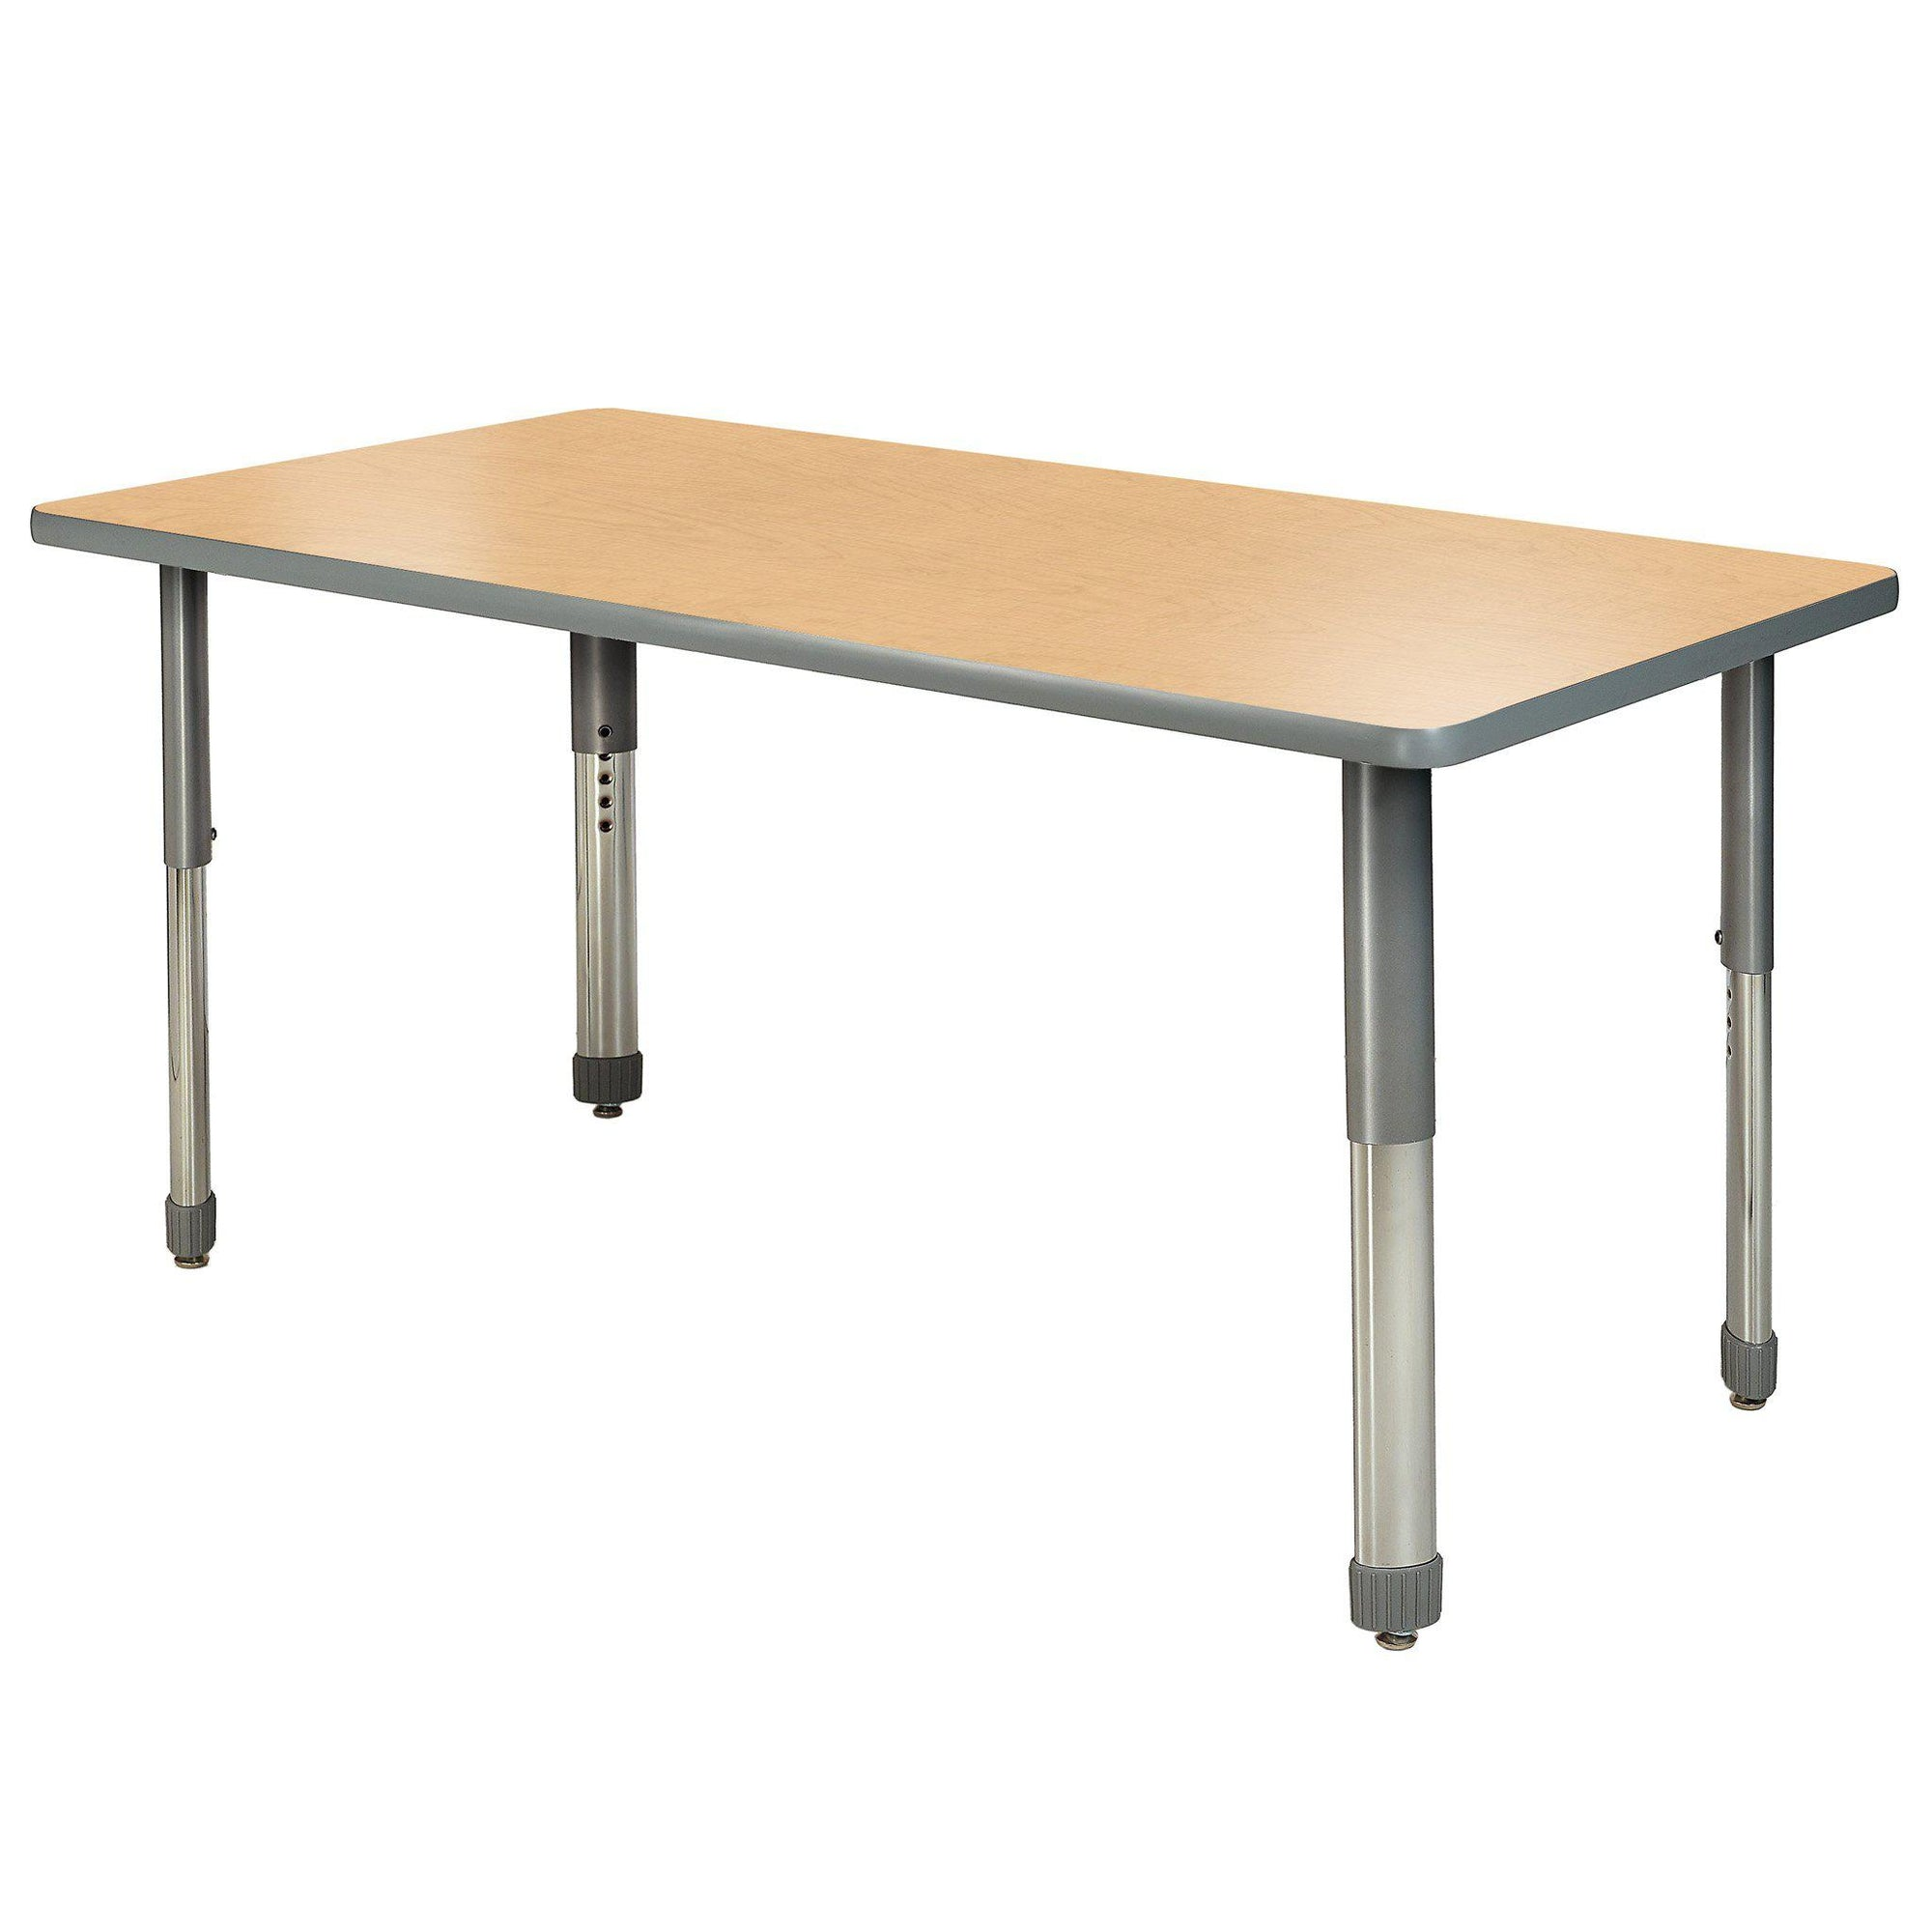 "Aero Activity Table, 30"" x 60"" Rectangle, Oval Adjustable Height Legs"